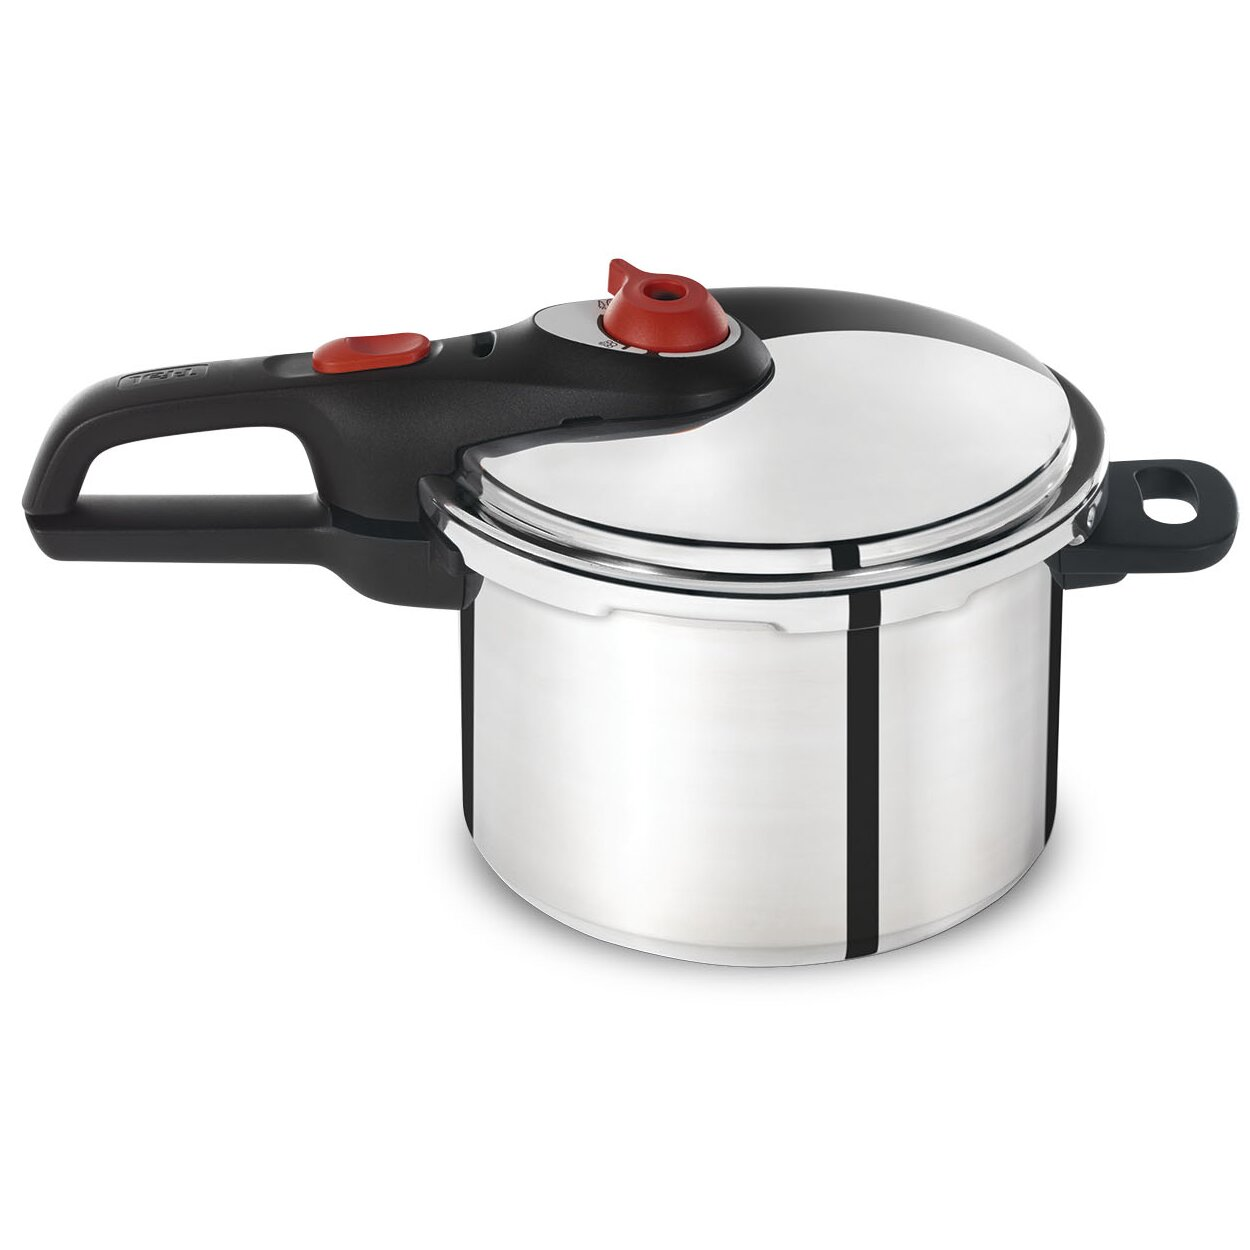 t fal pressure cooker review